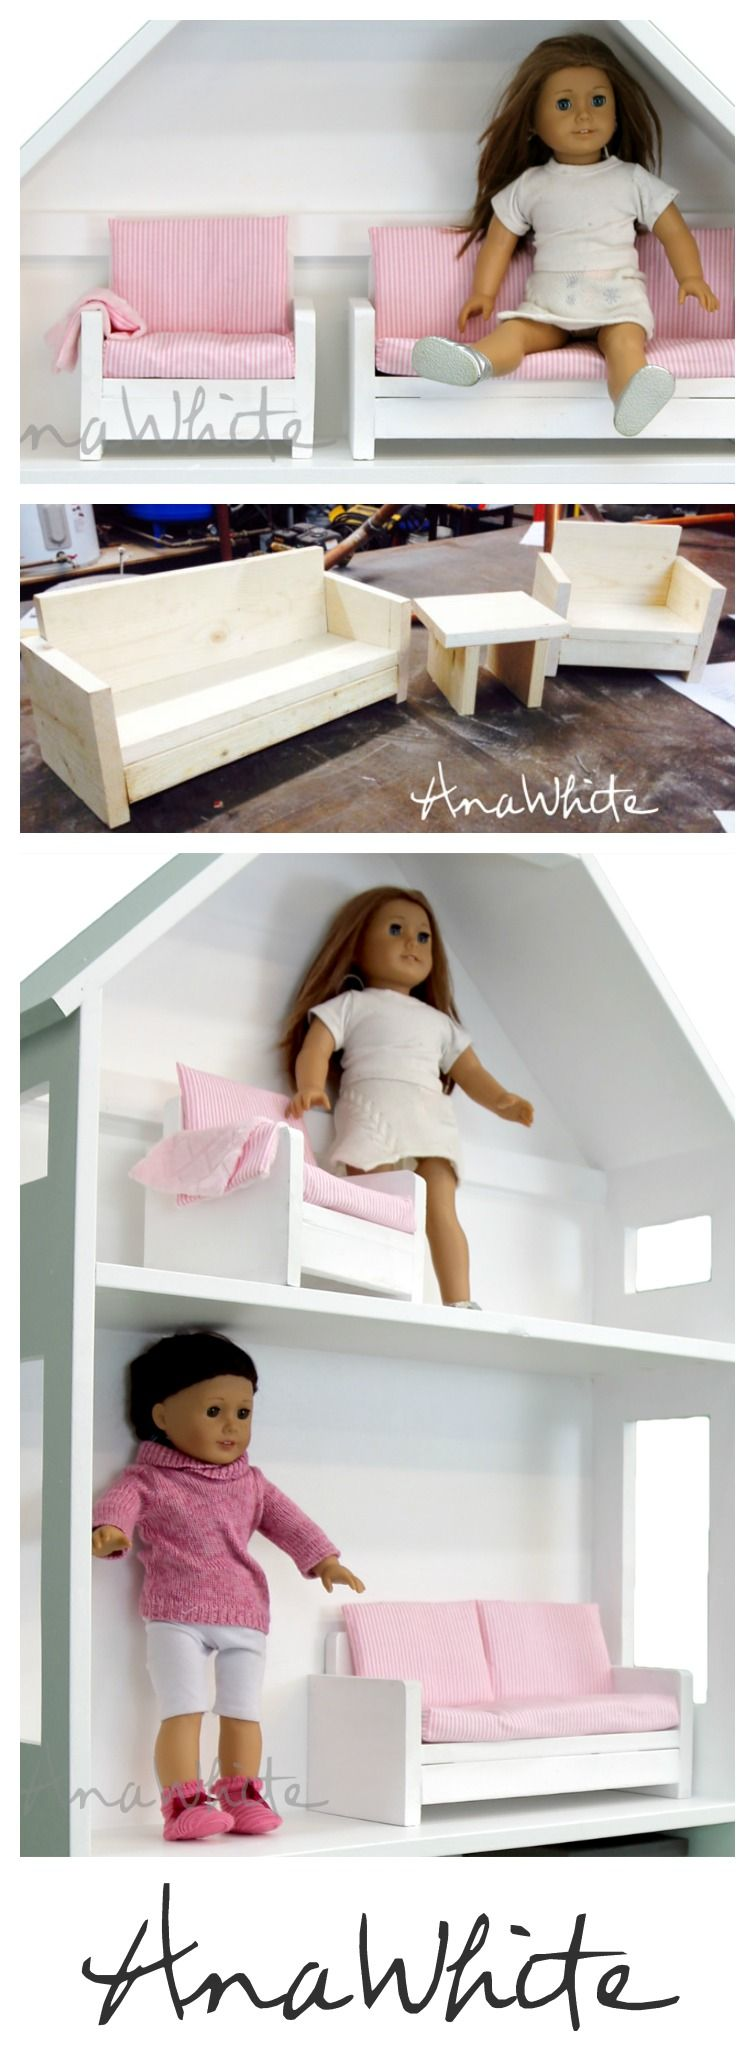 18 Doll Sofa Diy How To Make Bed More Comfortable Where Get Wood For Woodworking Kids Furniture Boys Dolls Easy American Girl Or And Chair Just 1x6 1x2 Scrap Plans By Ana White Let S Build Something